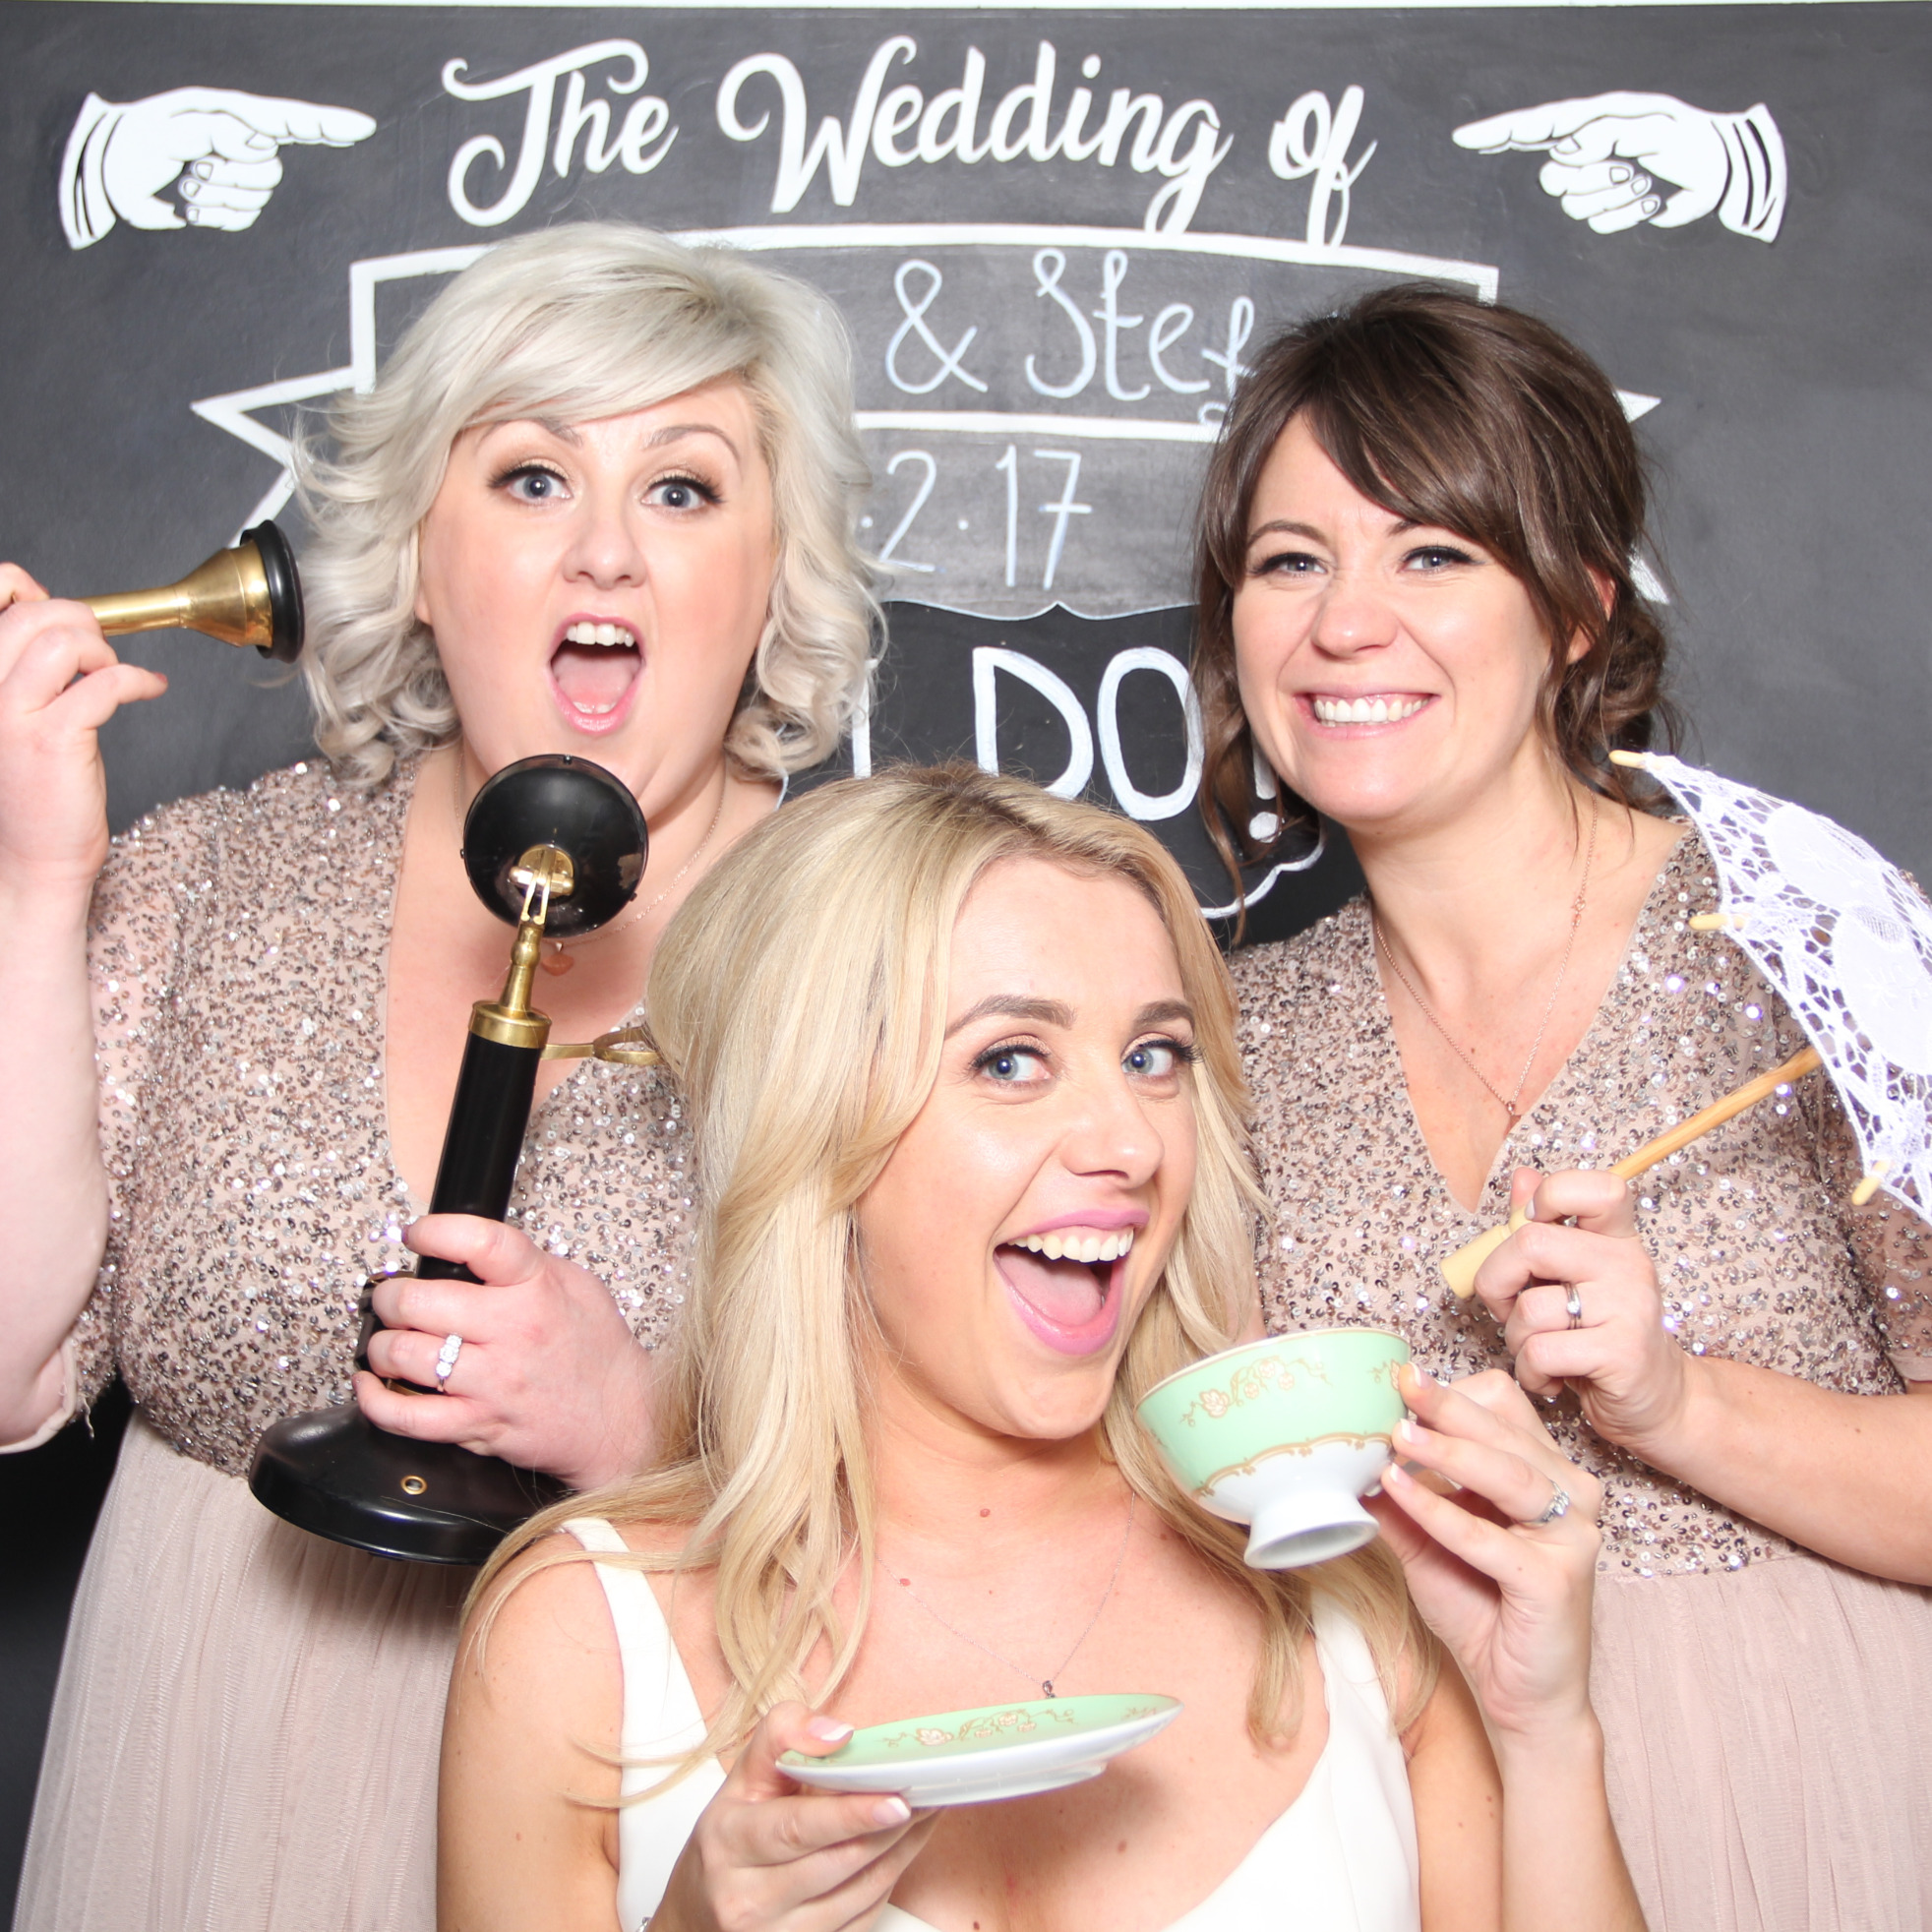 bygone wedding- photo booth hire glasgow